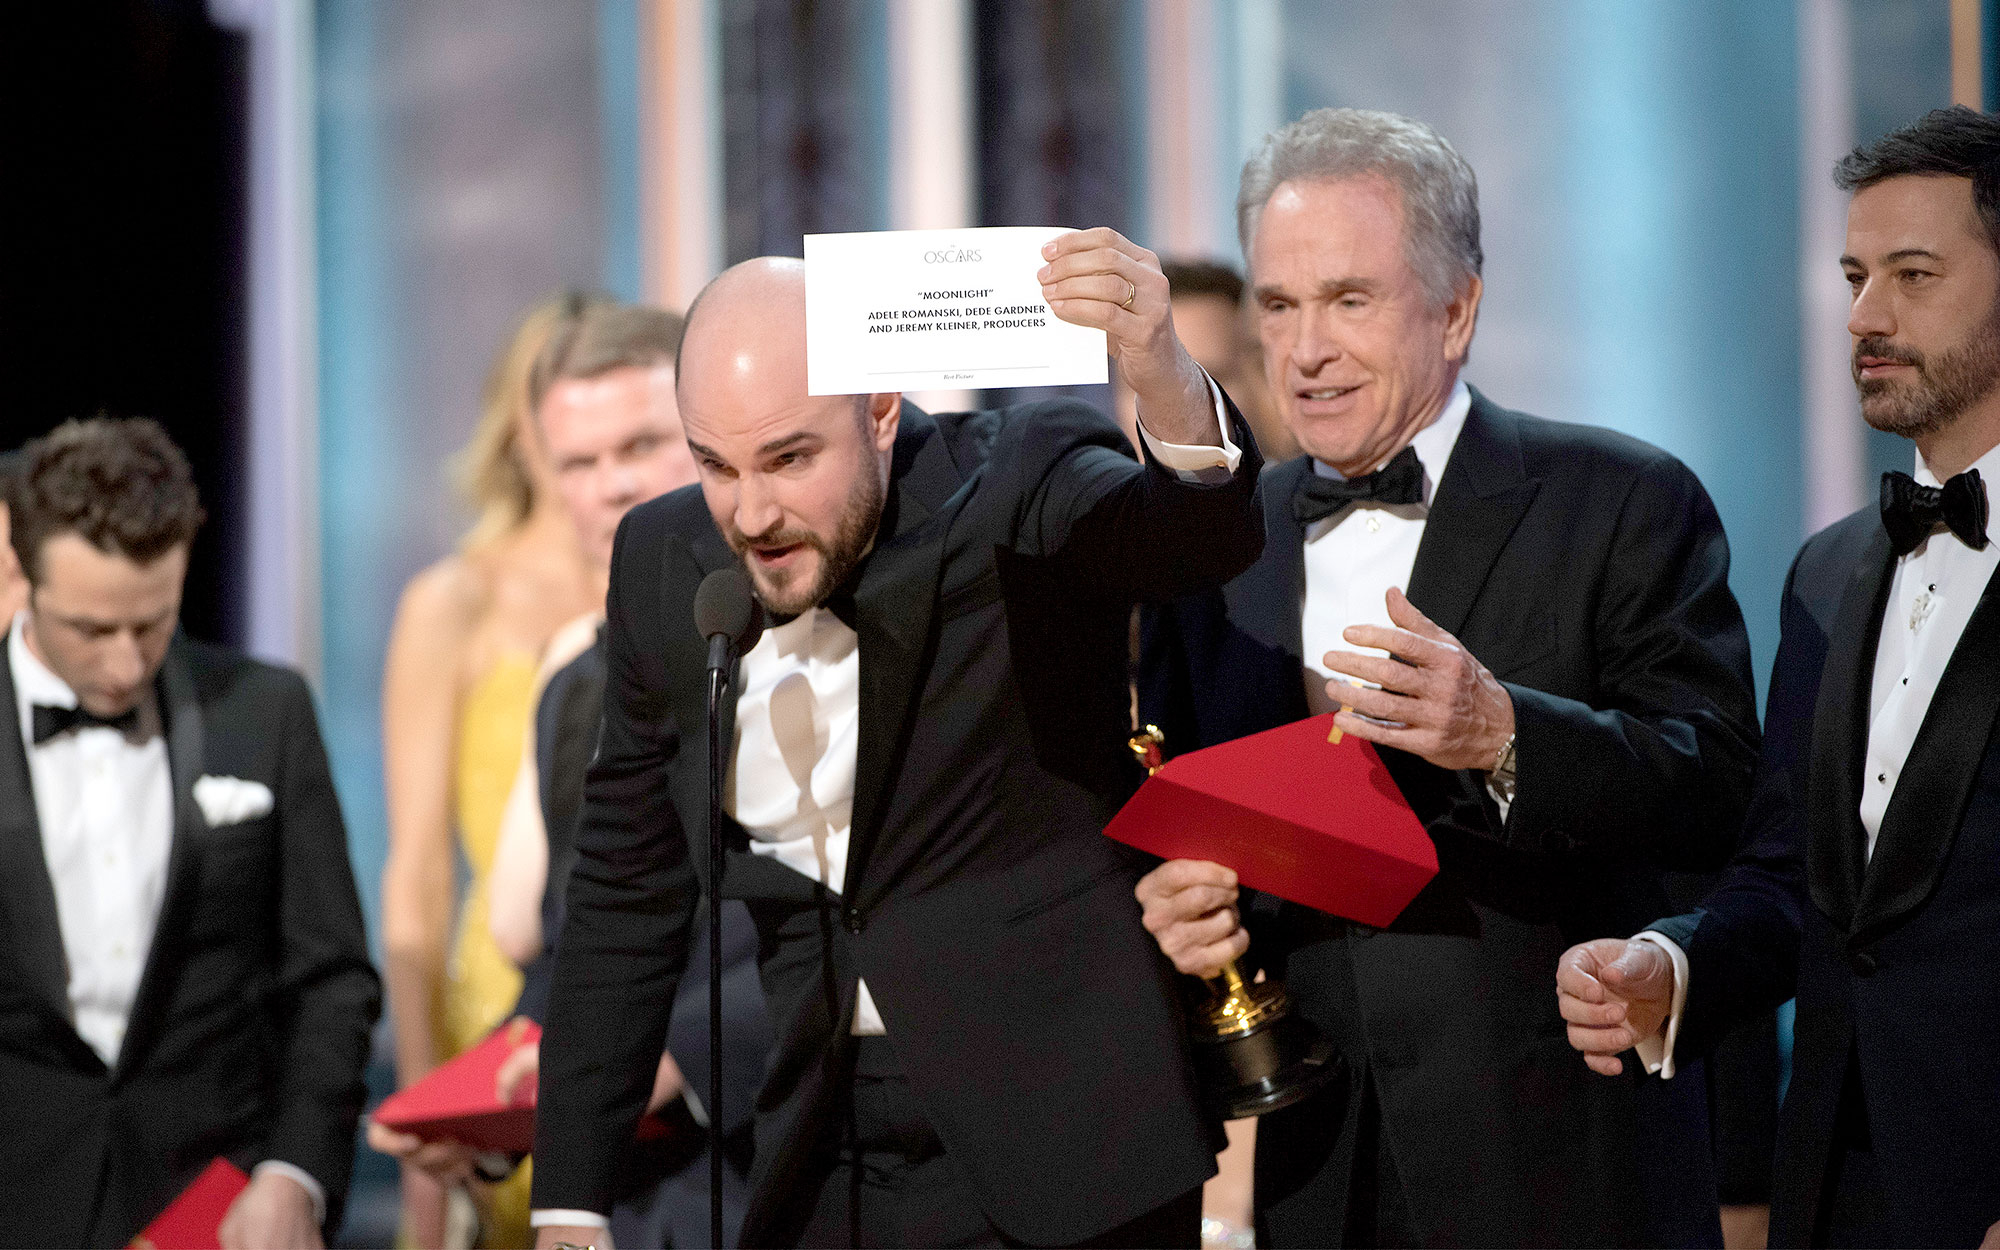 New rules govern handling of Oscar envelopes